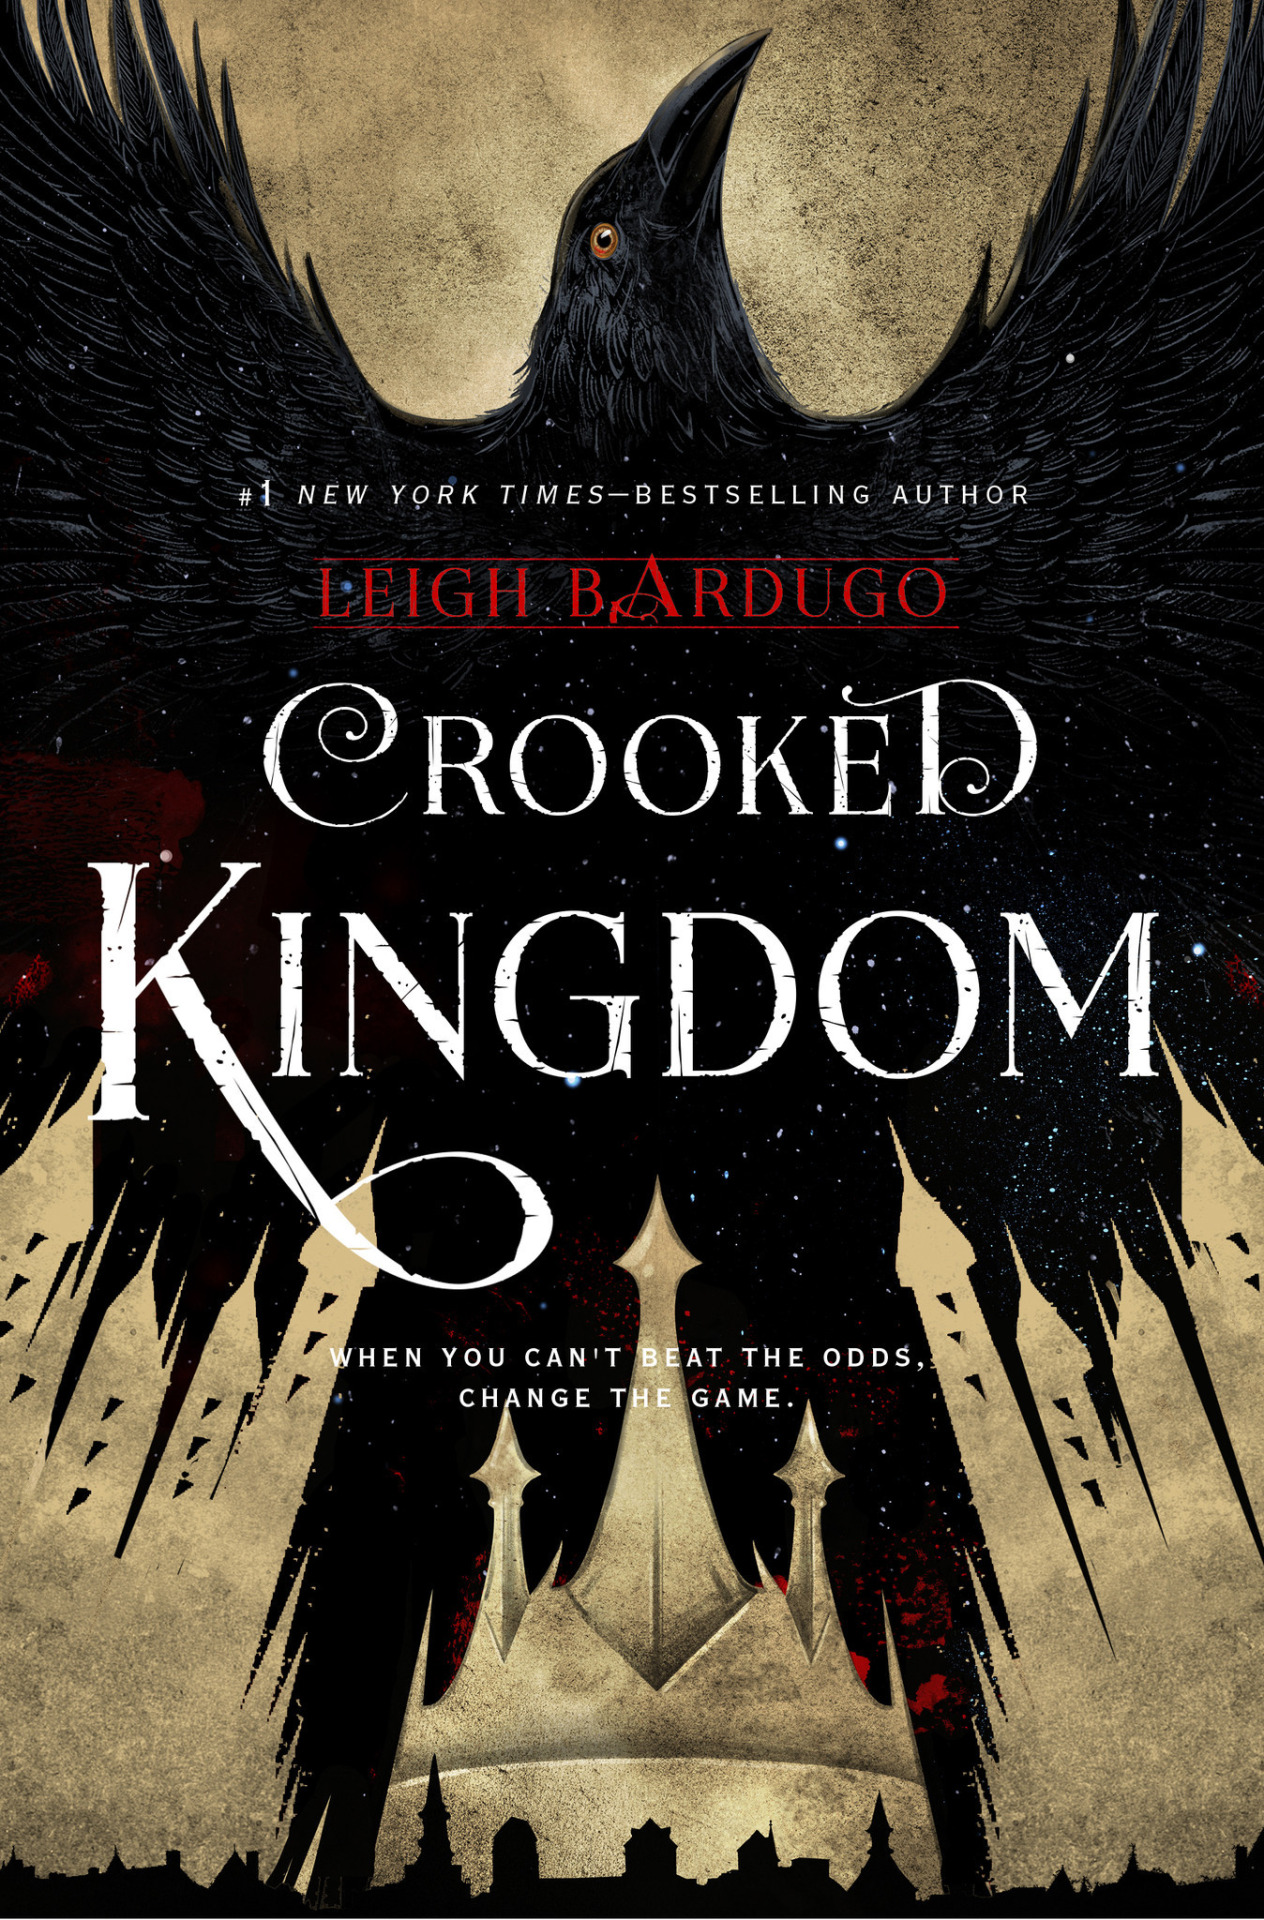 #30 Waiting on… Crooked Kingdom by Leigh Bardugo